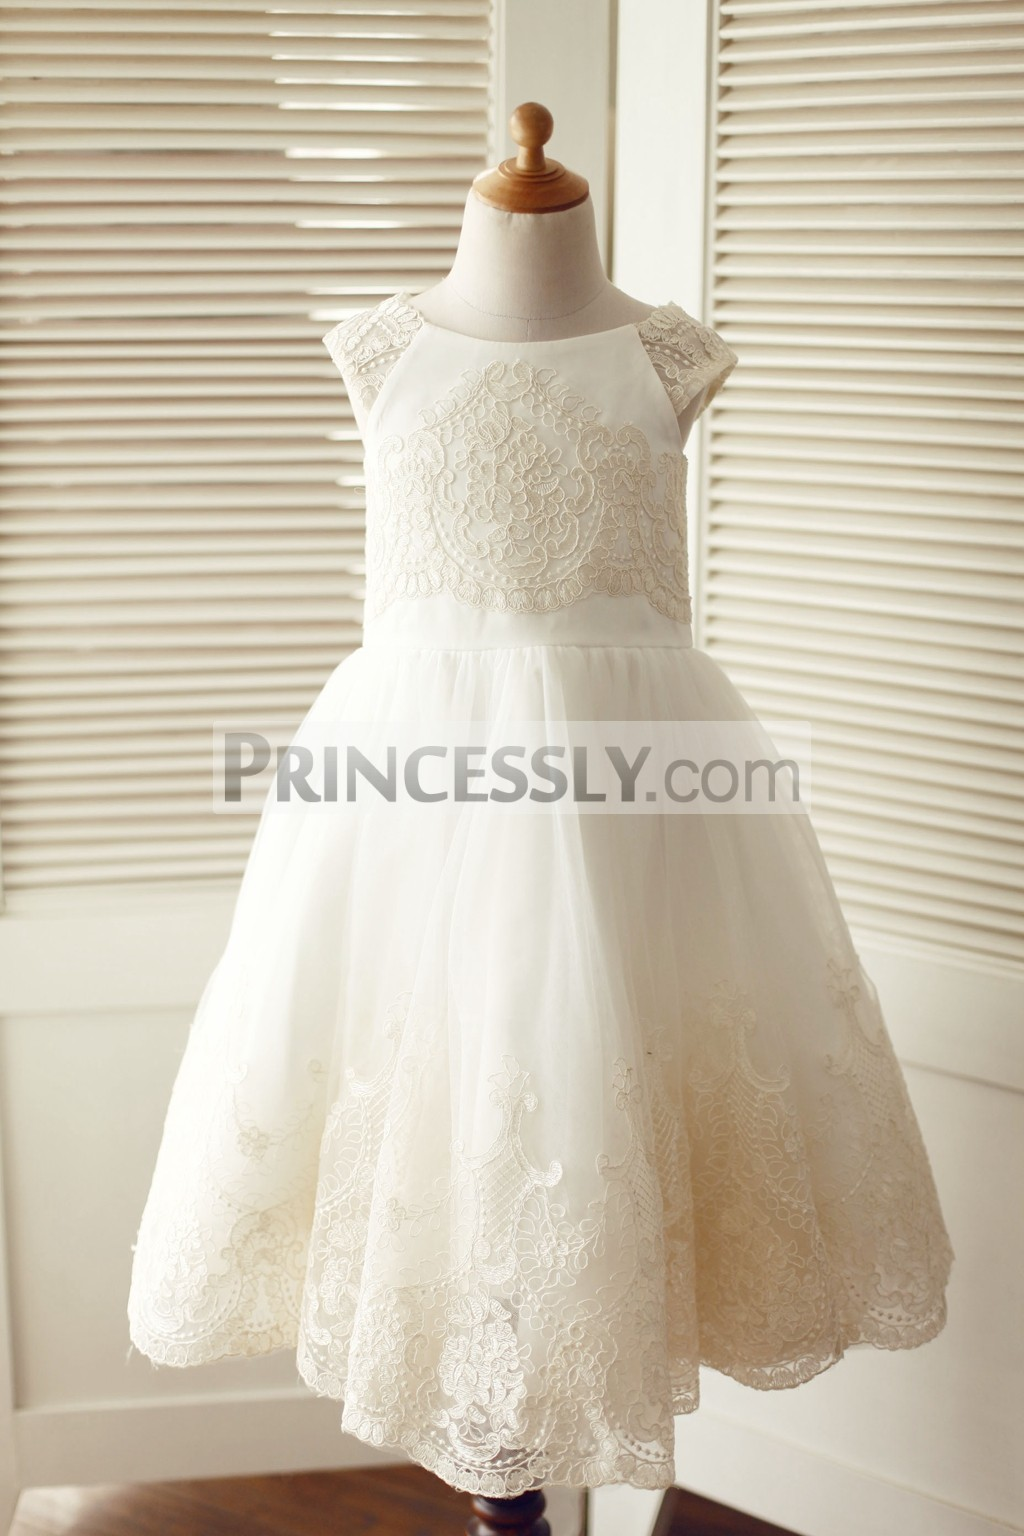 f8c5ae9683 Cap Sleeves Champagne Lace Ivory Tulle Wedding Flower Girl Dress ...